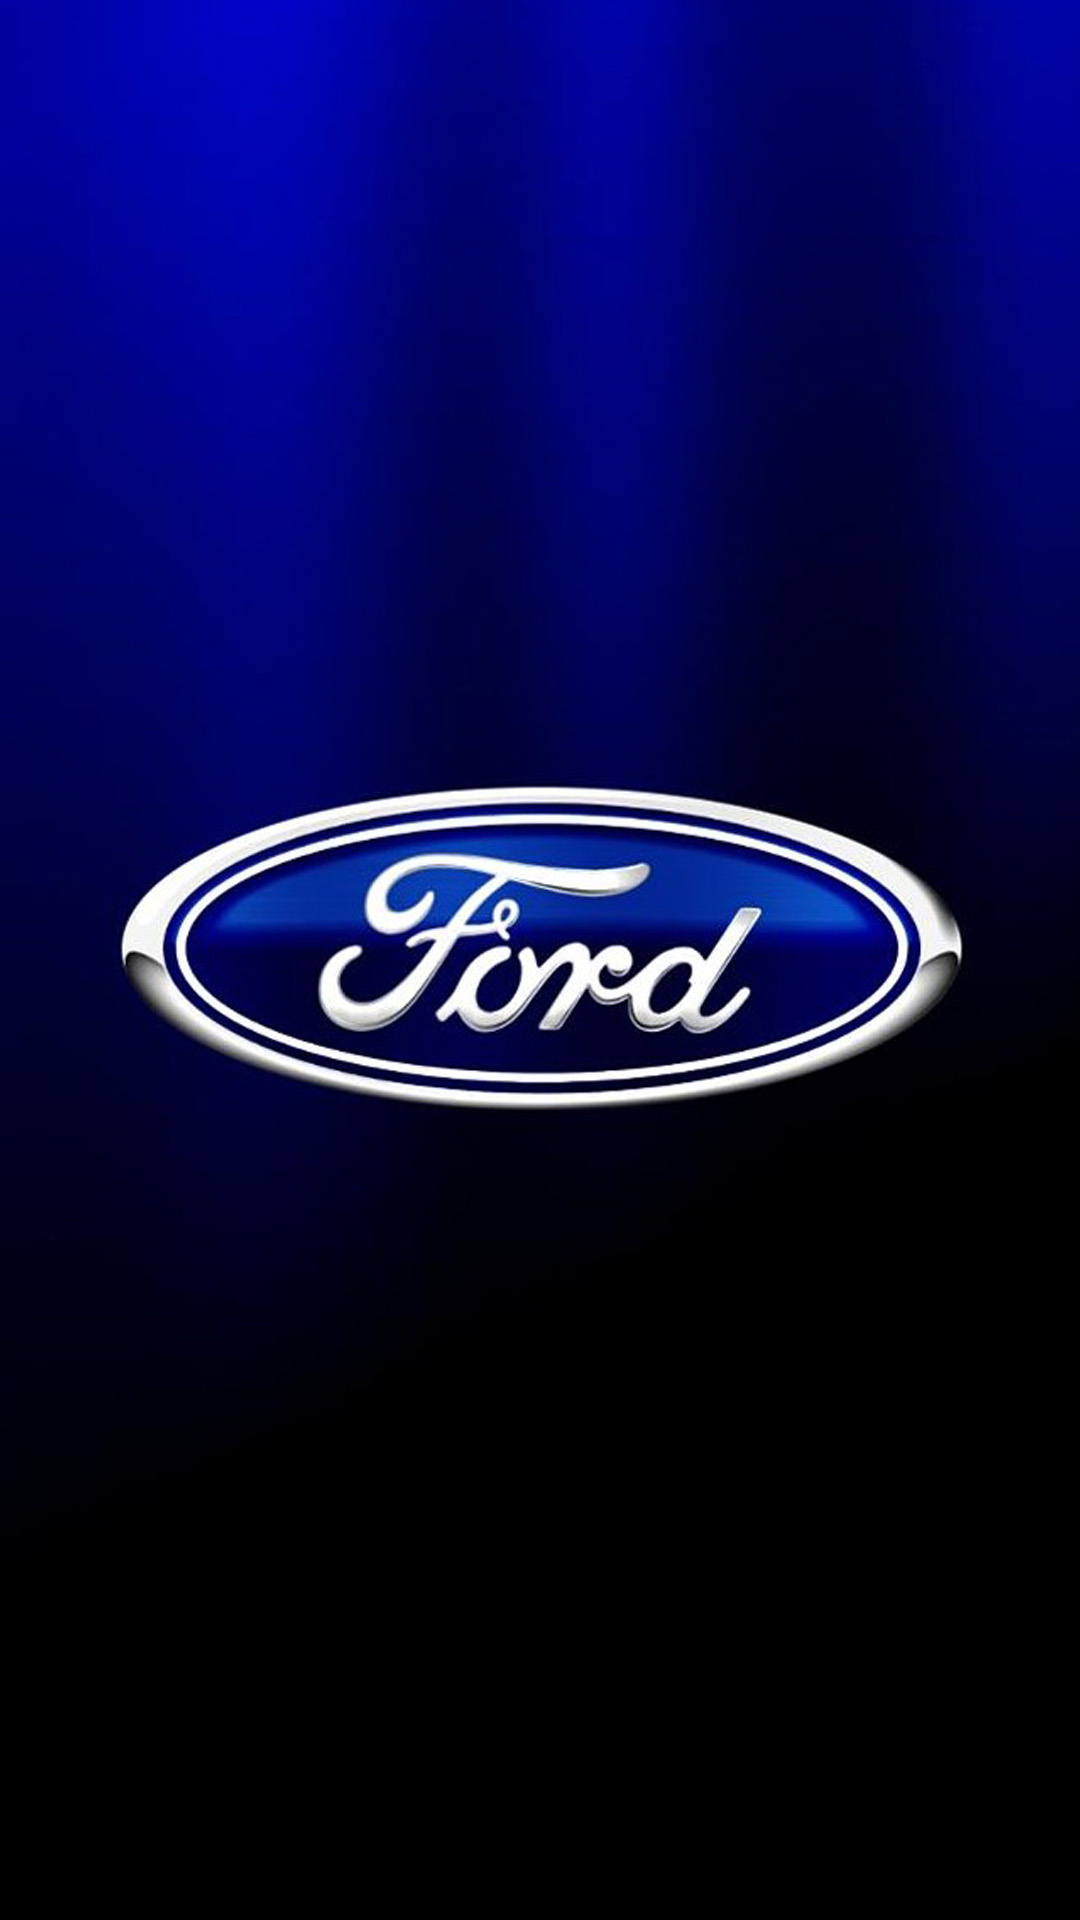 Ford LOGO Galaxy Note 3 Wallpapers 1080x1920